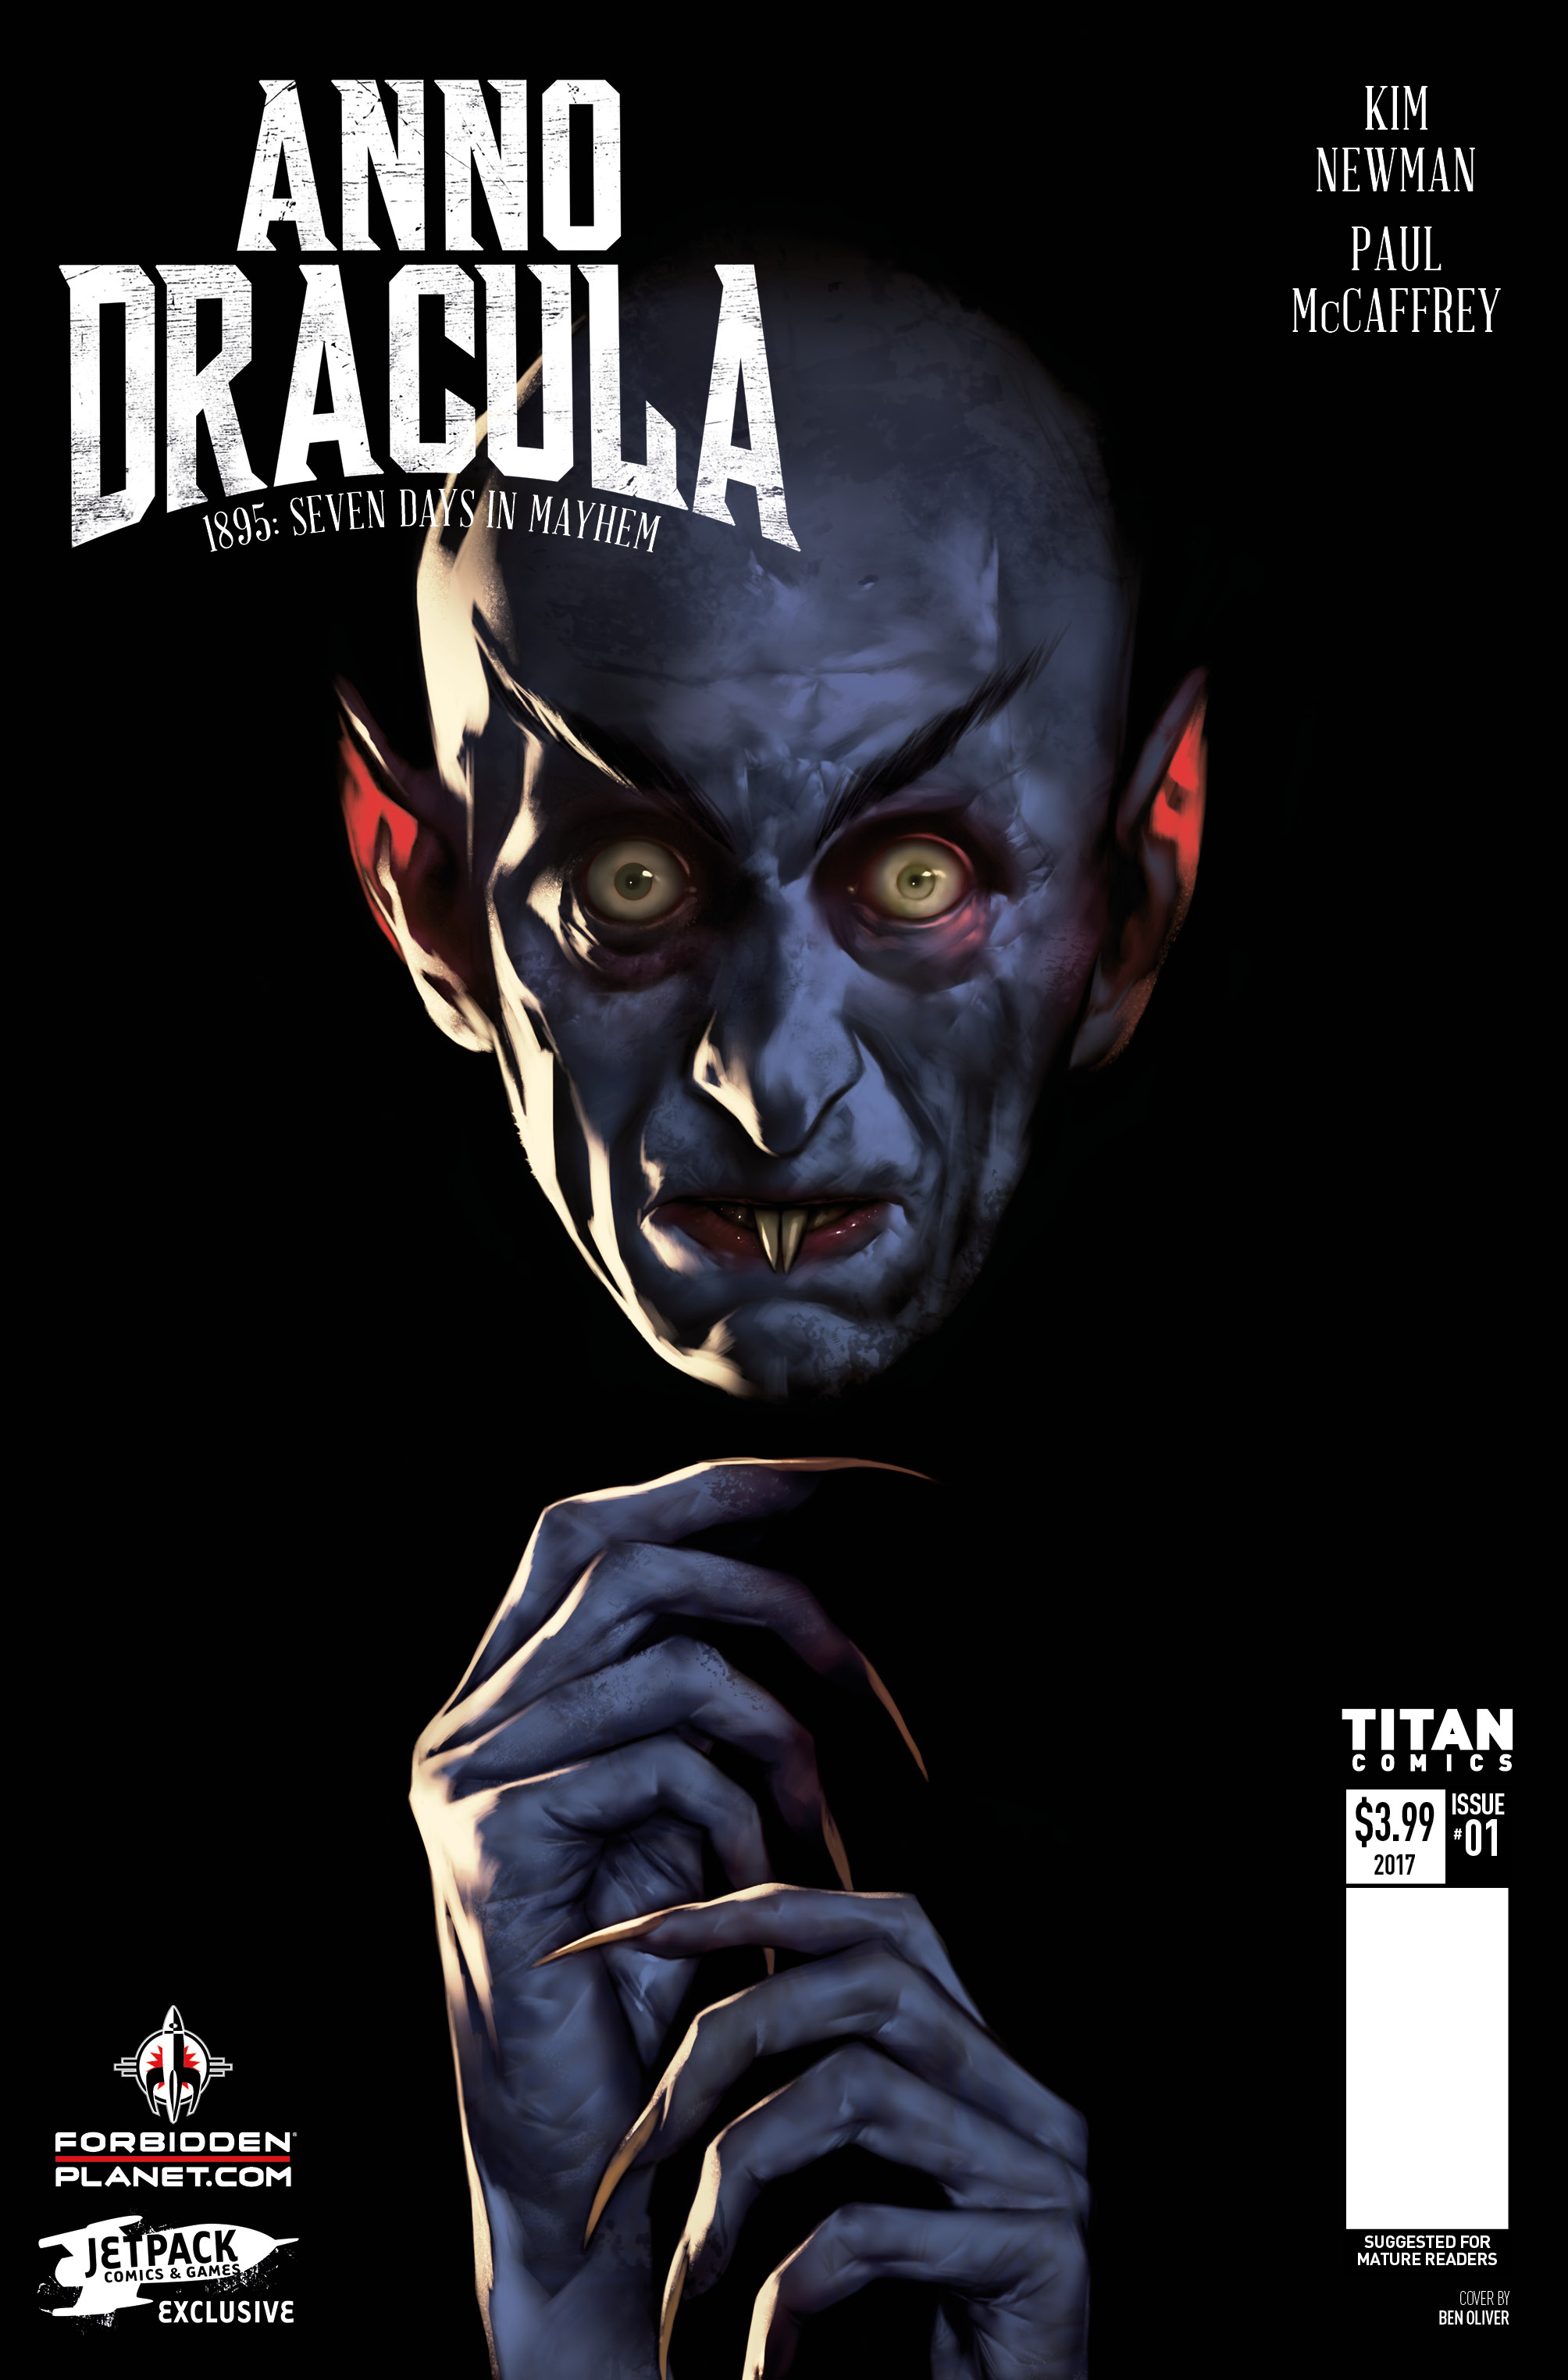 Anno Dracula 1895: Seven Days In Mayhem #1 Review